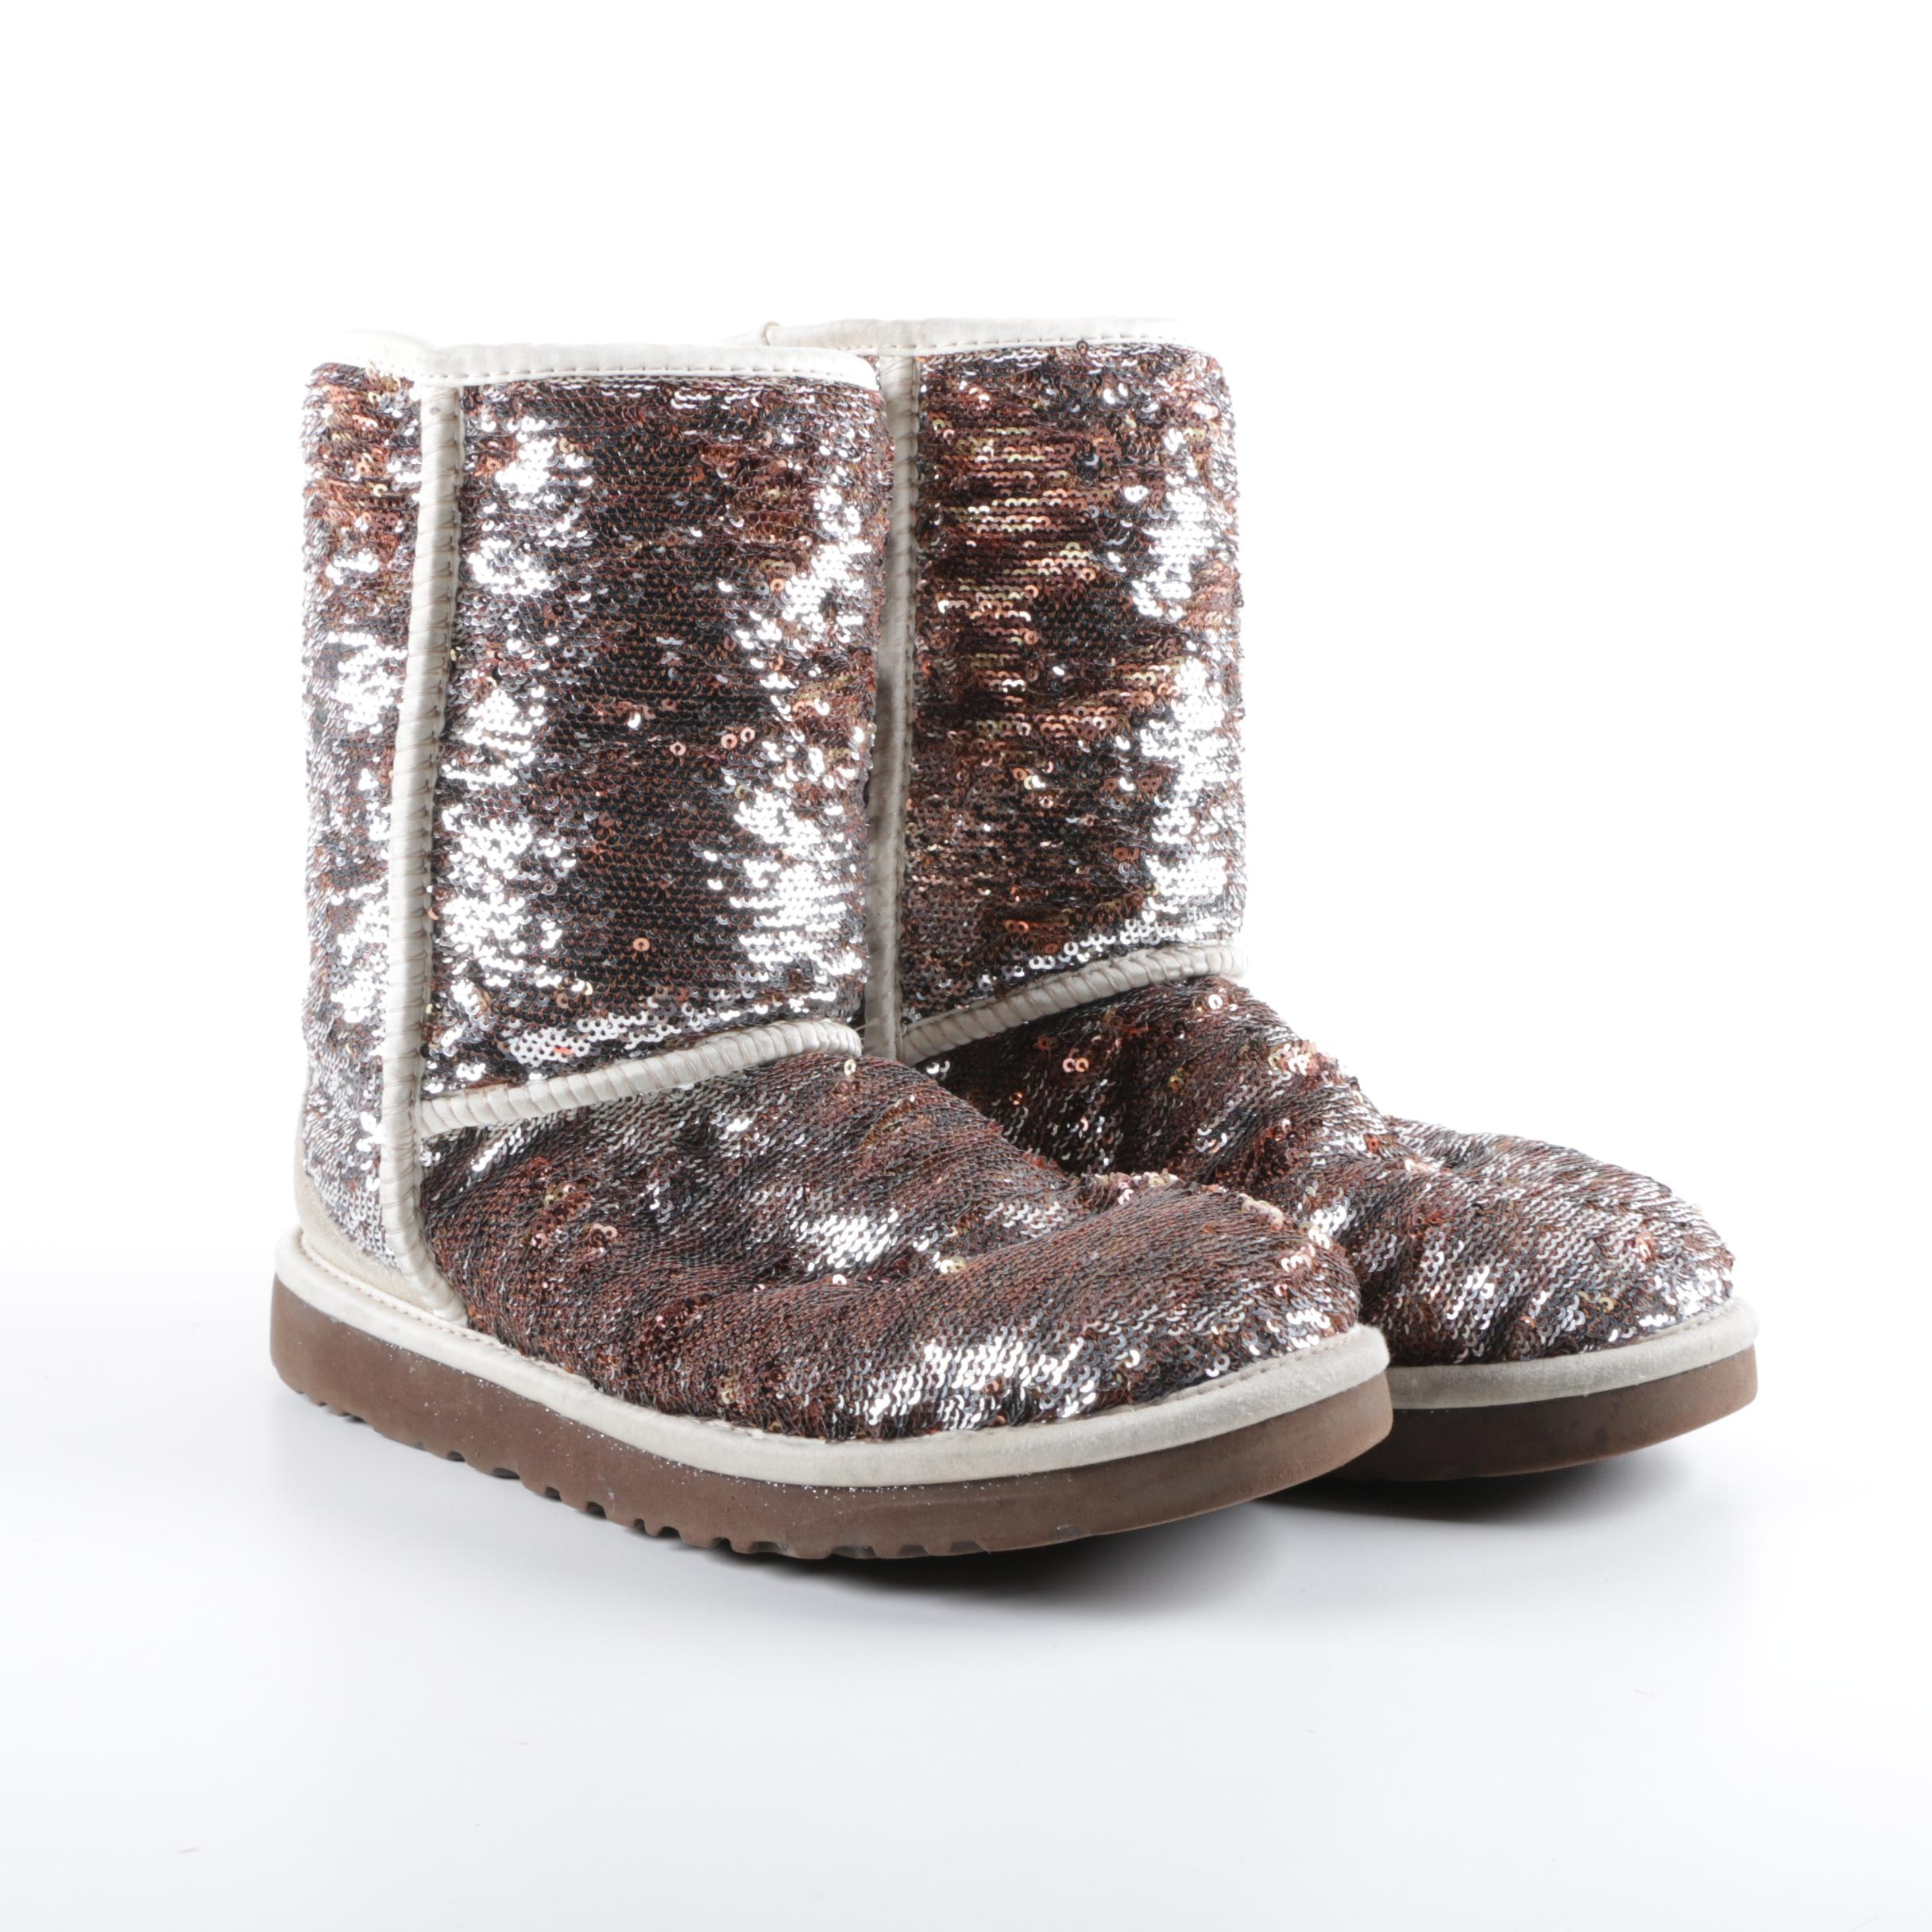 UGG Australia Mermaid Sequin and Suede Boots